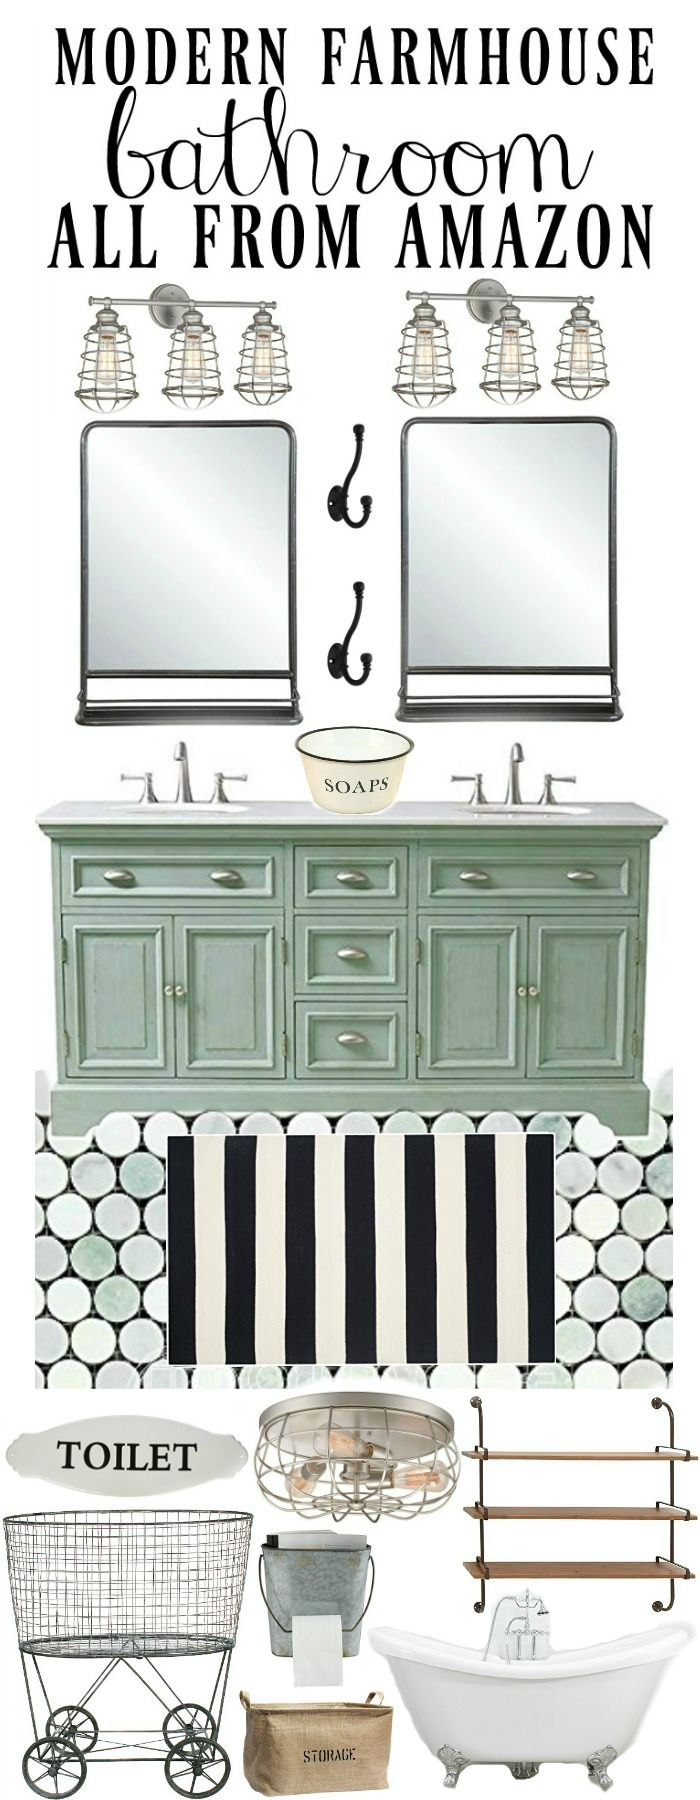 Modern farmhouse bathroom design - using all products from Amazon!